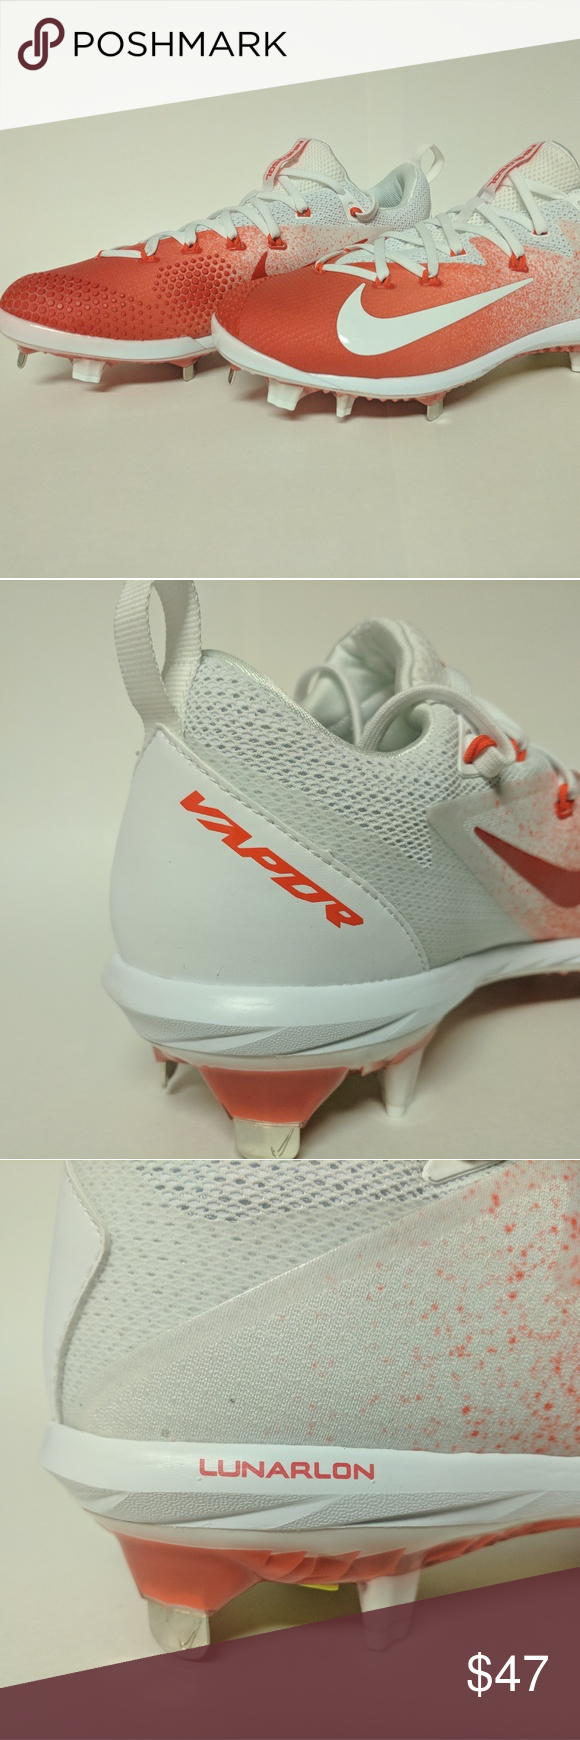 7086f79602d9 Nike Lunar Vapor Ultrafly Elite Metal Baseball 9.5 Nike Lunar Vapor  Ultrafly Elite Metal Baseball Cleats 9.5 Red/ White 852686-618 New without  Box Will ship ...